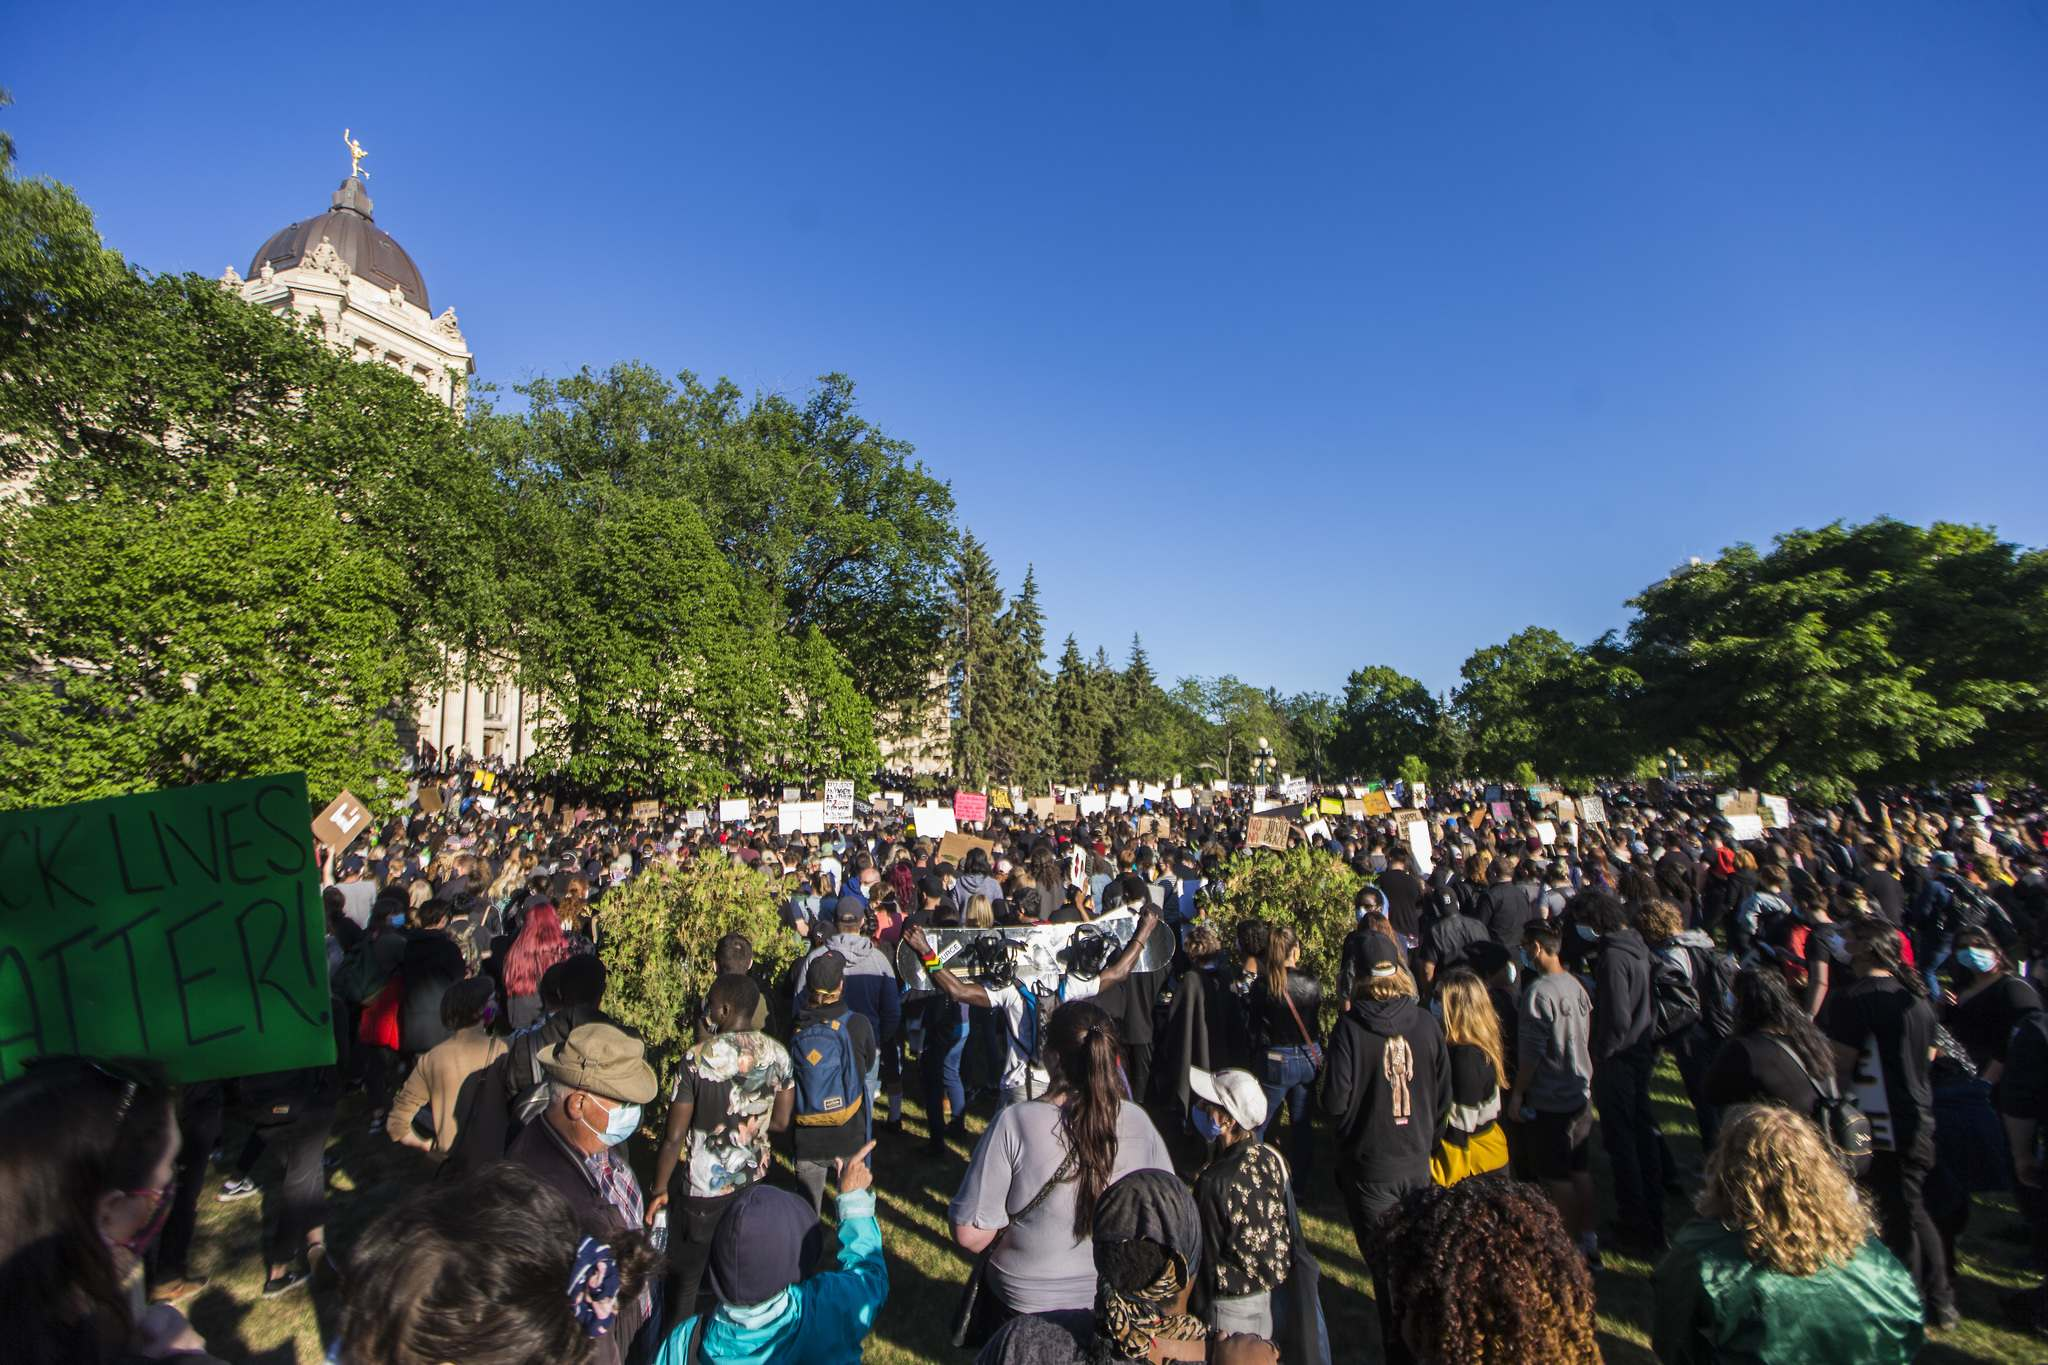 MIKAELA MACKENZIE / WINNIPEG FREE PRESS</p><p>Protesters gather at the Manitoba Legislative Building for a rally in support of justice for black lives.</p>